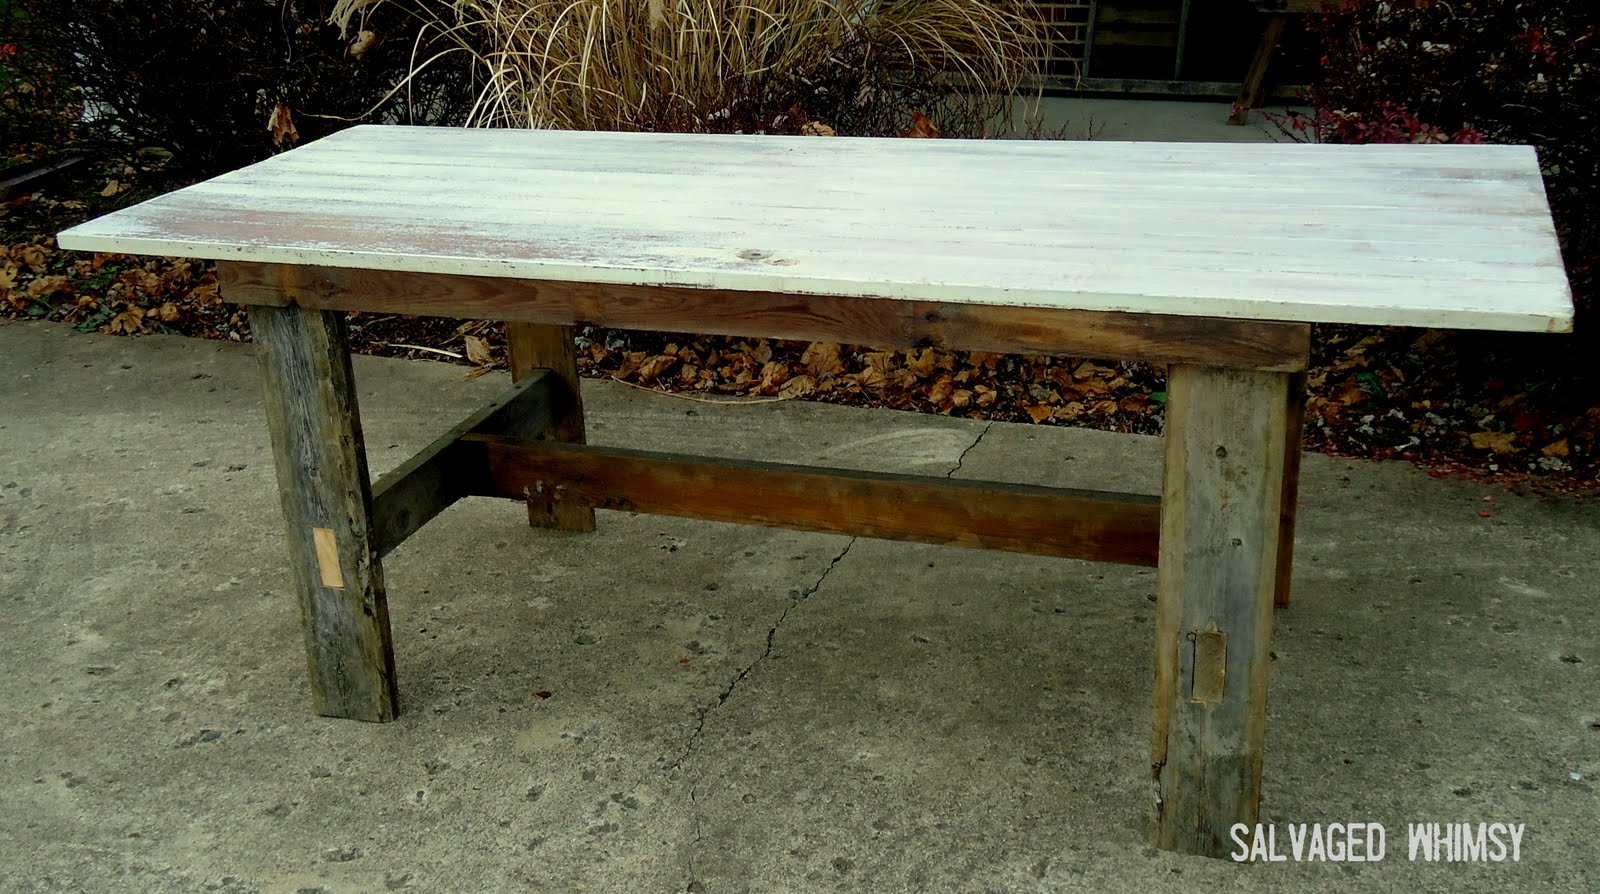 salvaged whimsy finally the farm table